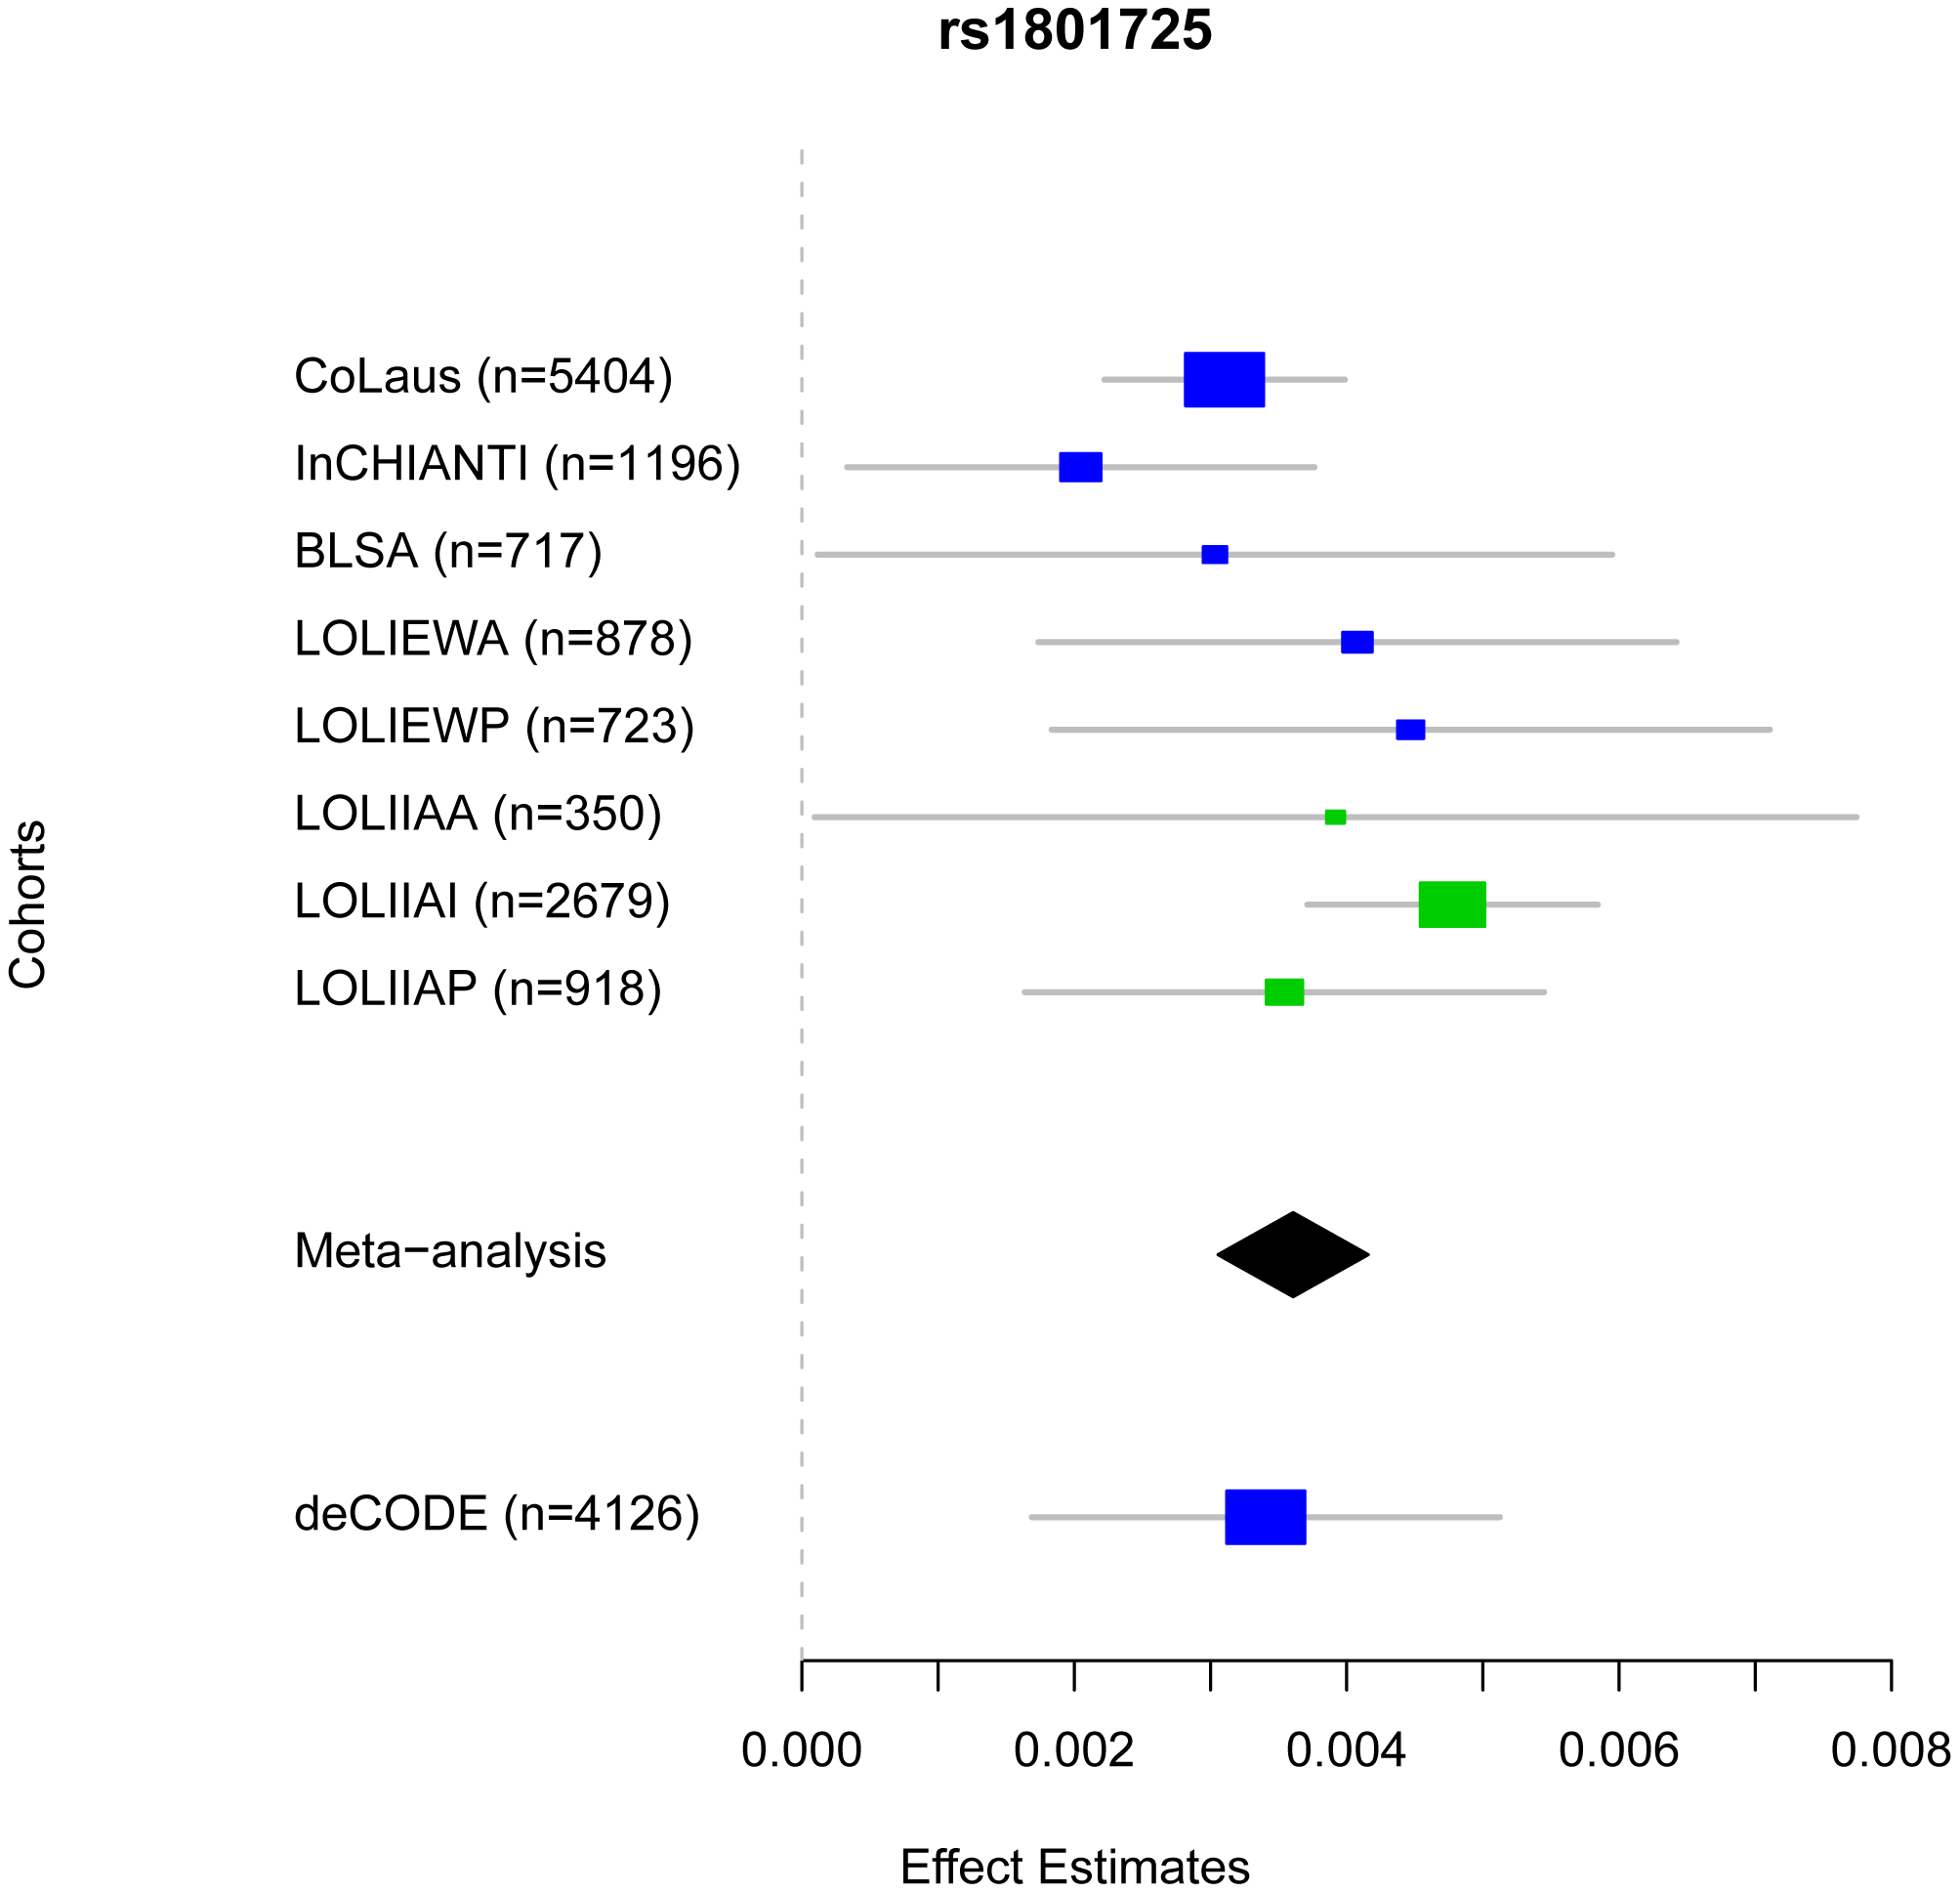 Comparison of rs1801725 significance across cohorts.